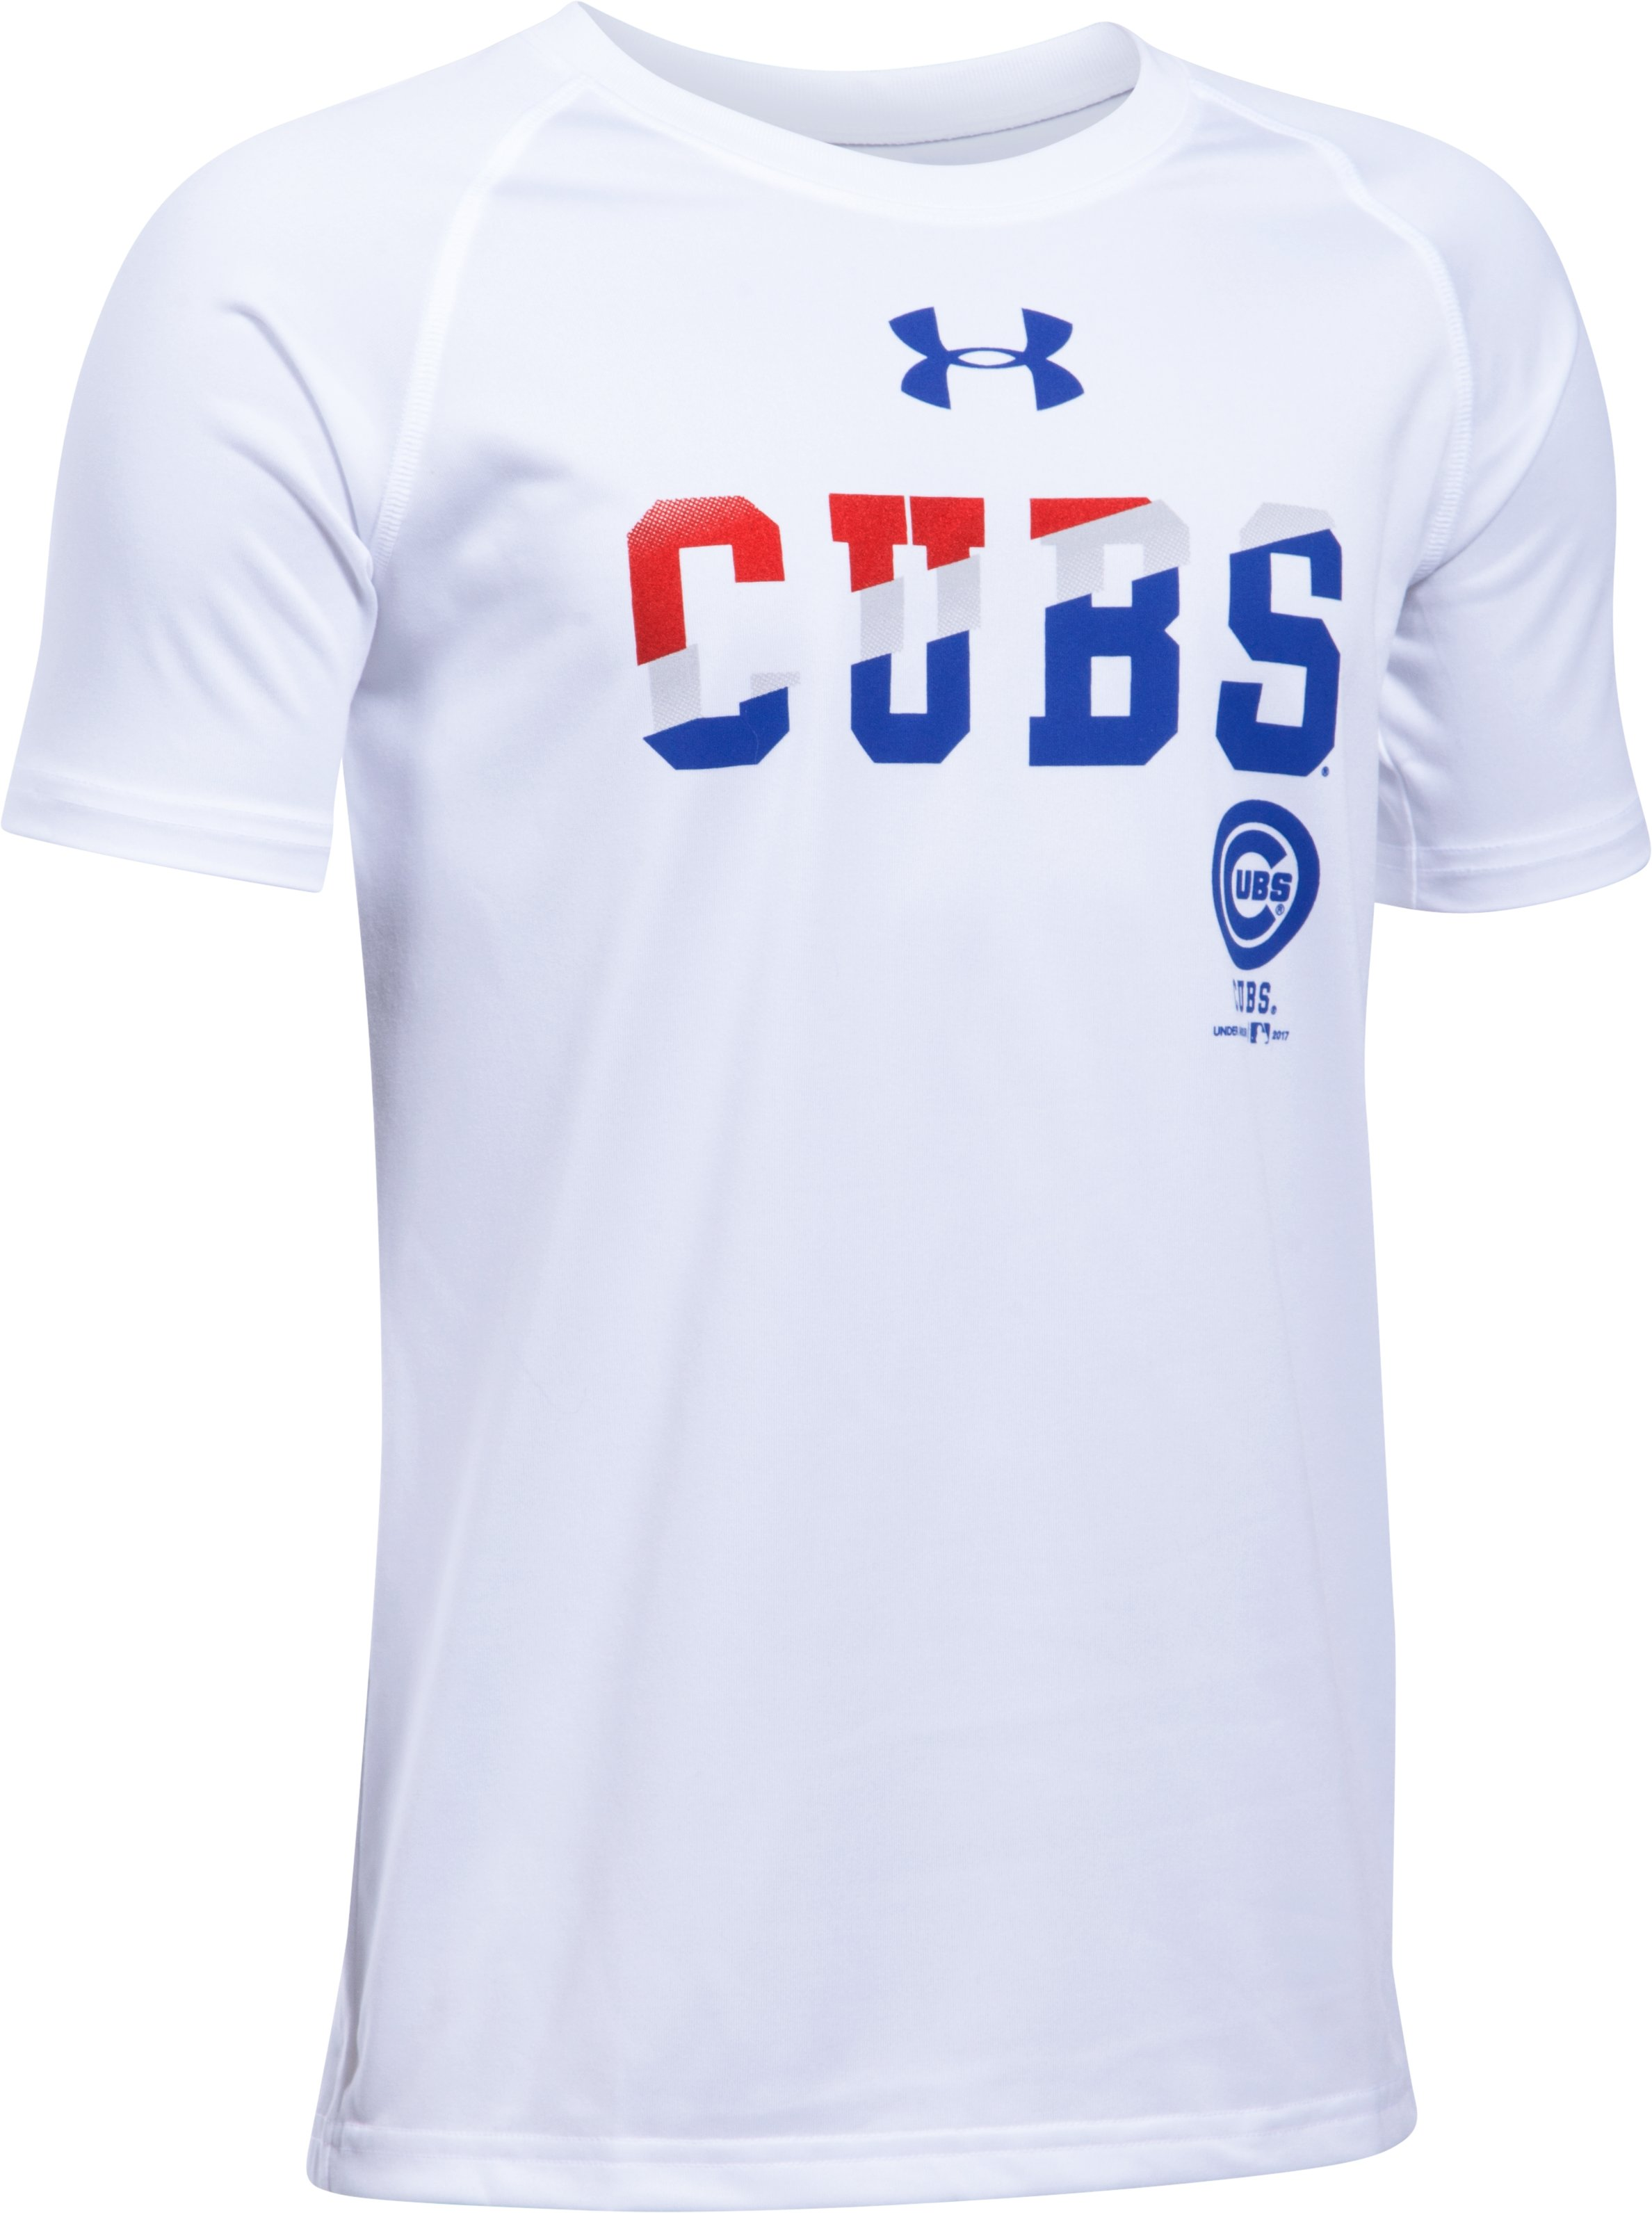 Boys' Chicago Cubs 4th Of July T-Shirt, White